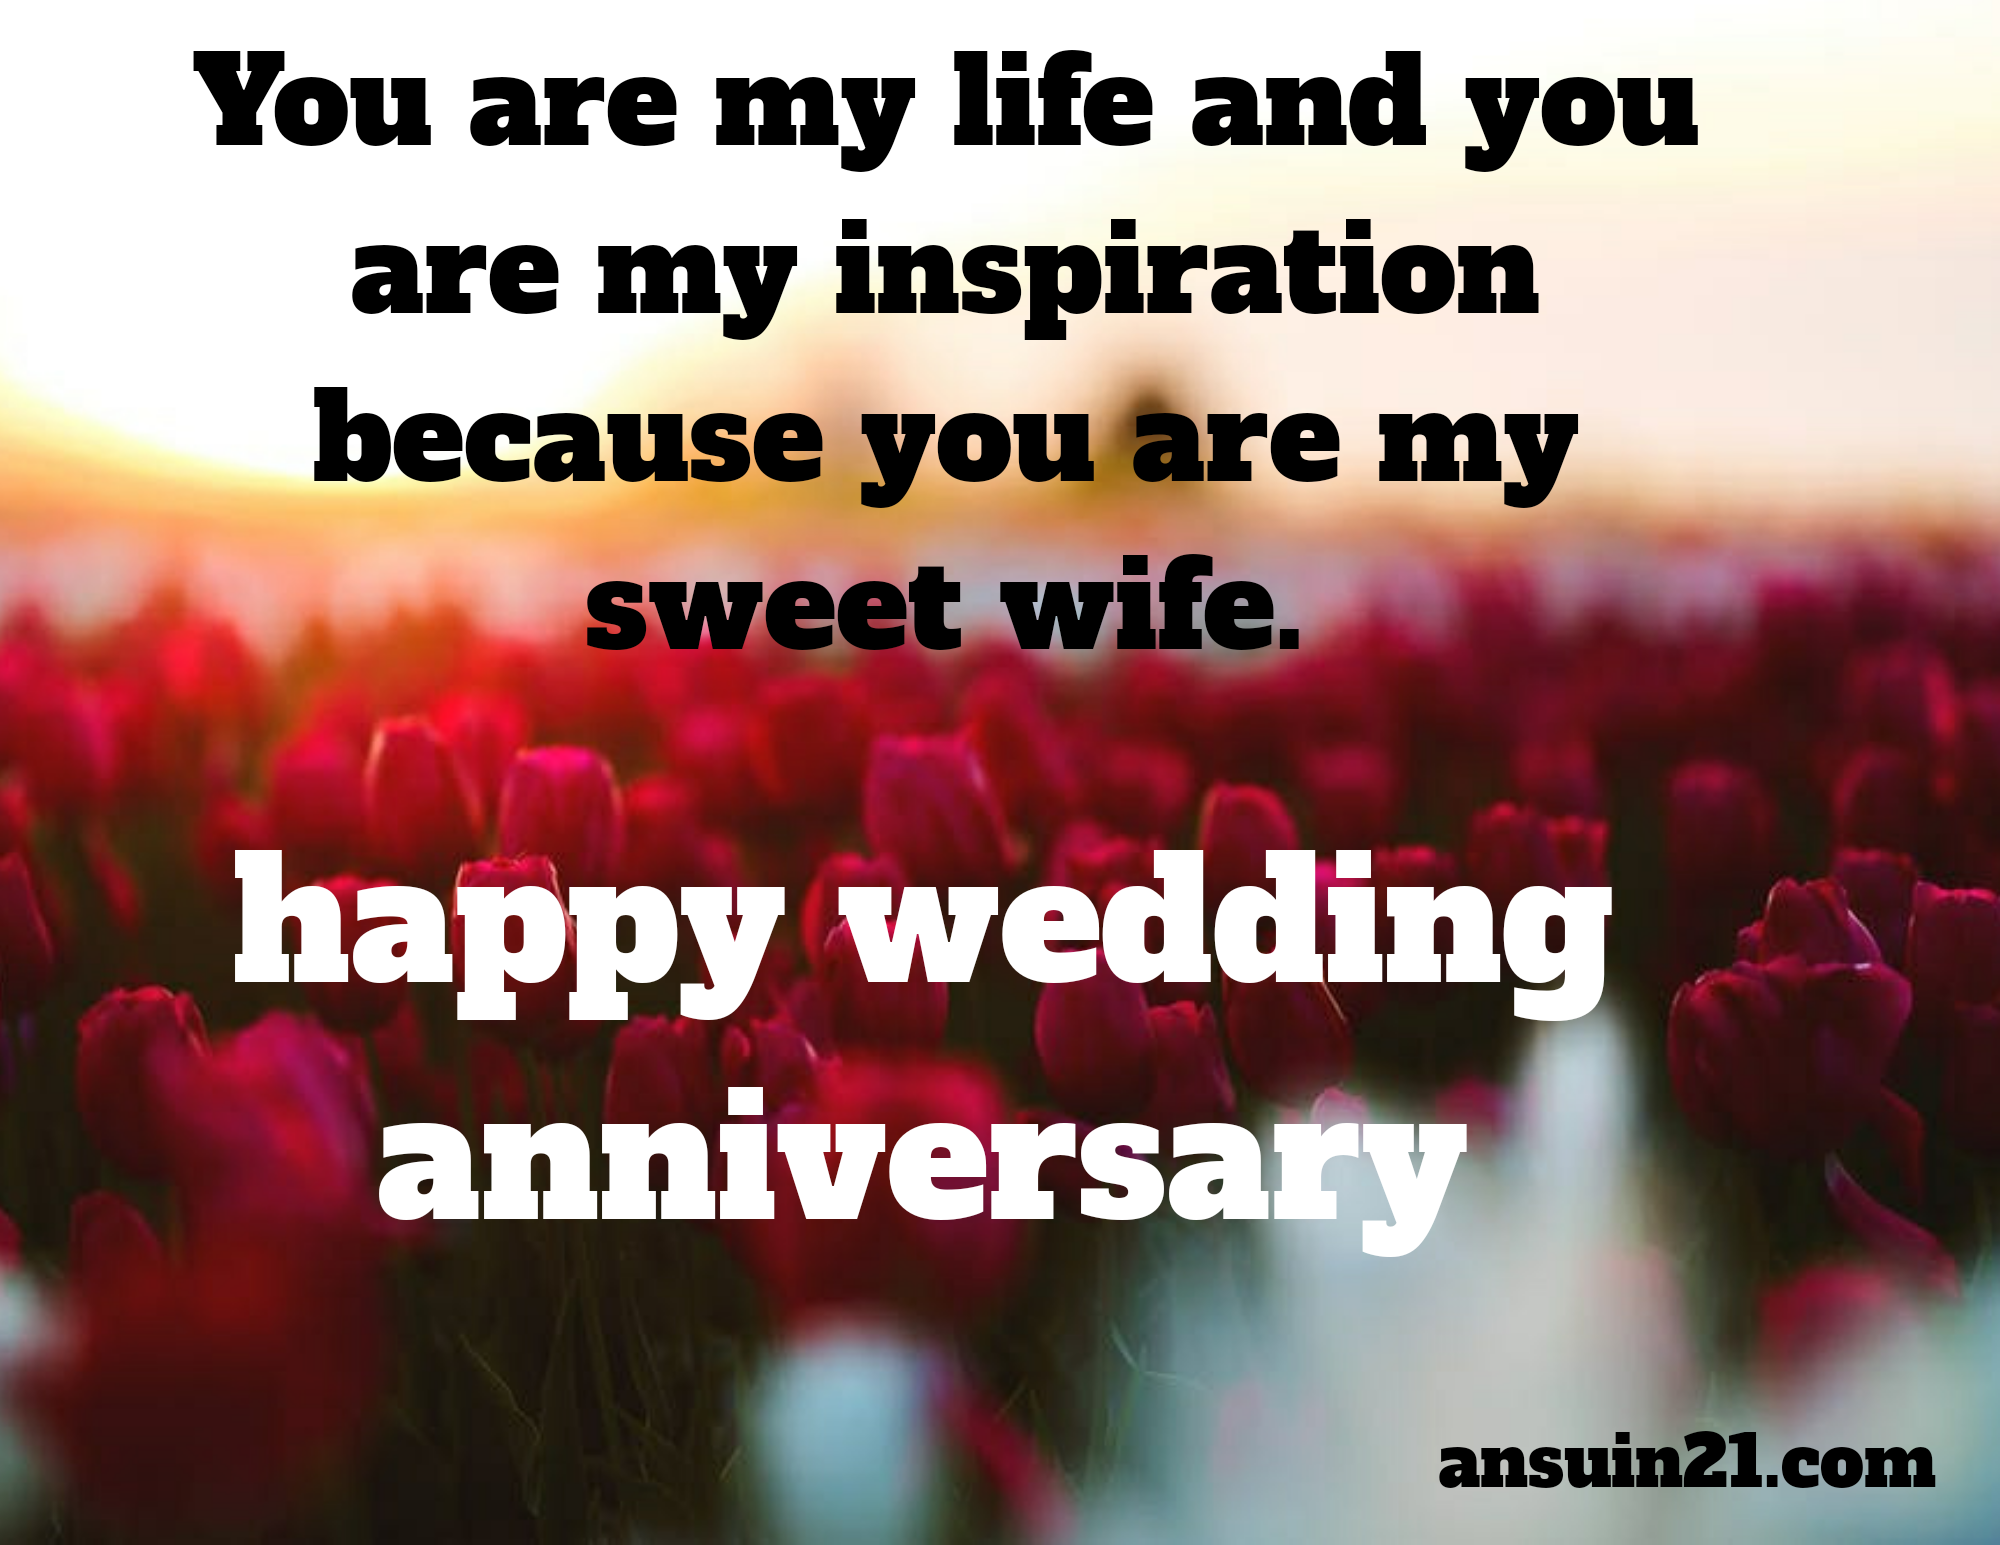 Happy marriage anniversary wishes English for Wife, or spouse, sms, greetings,status,